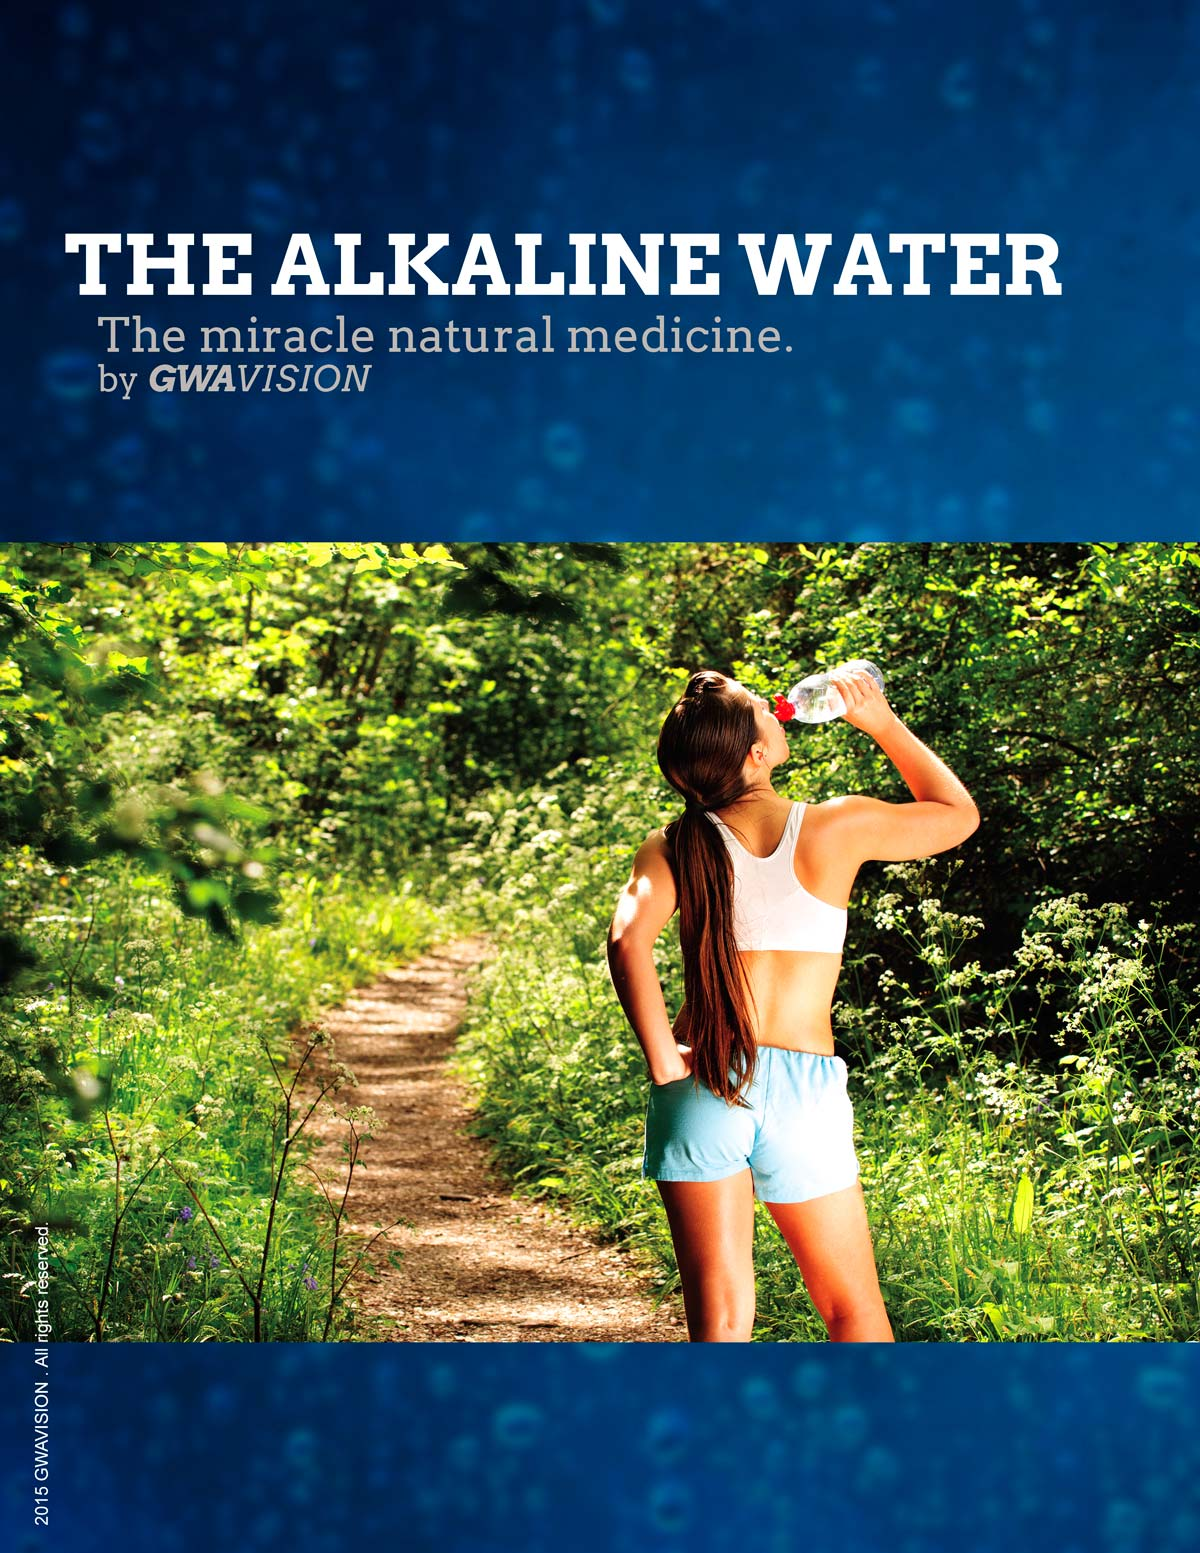 The Alkaline Water